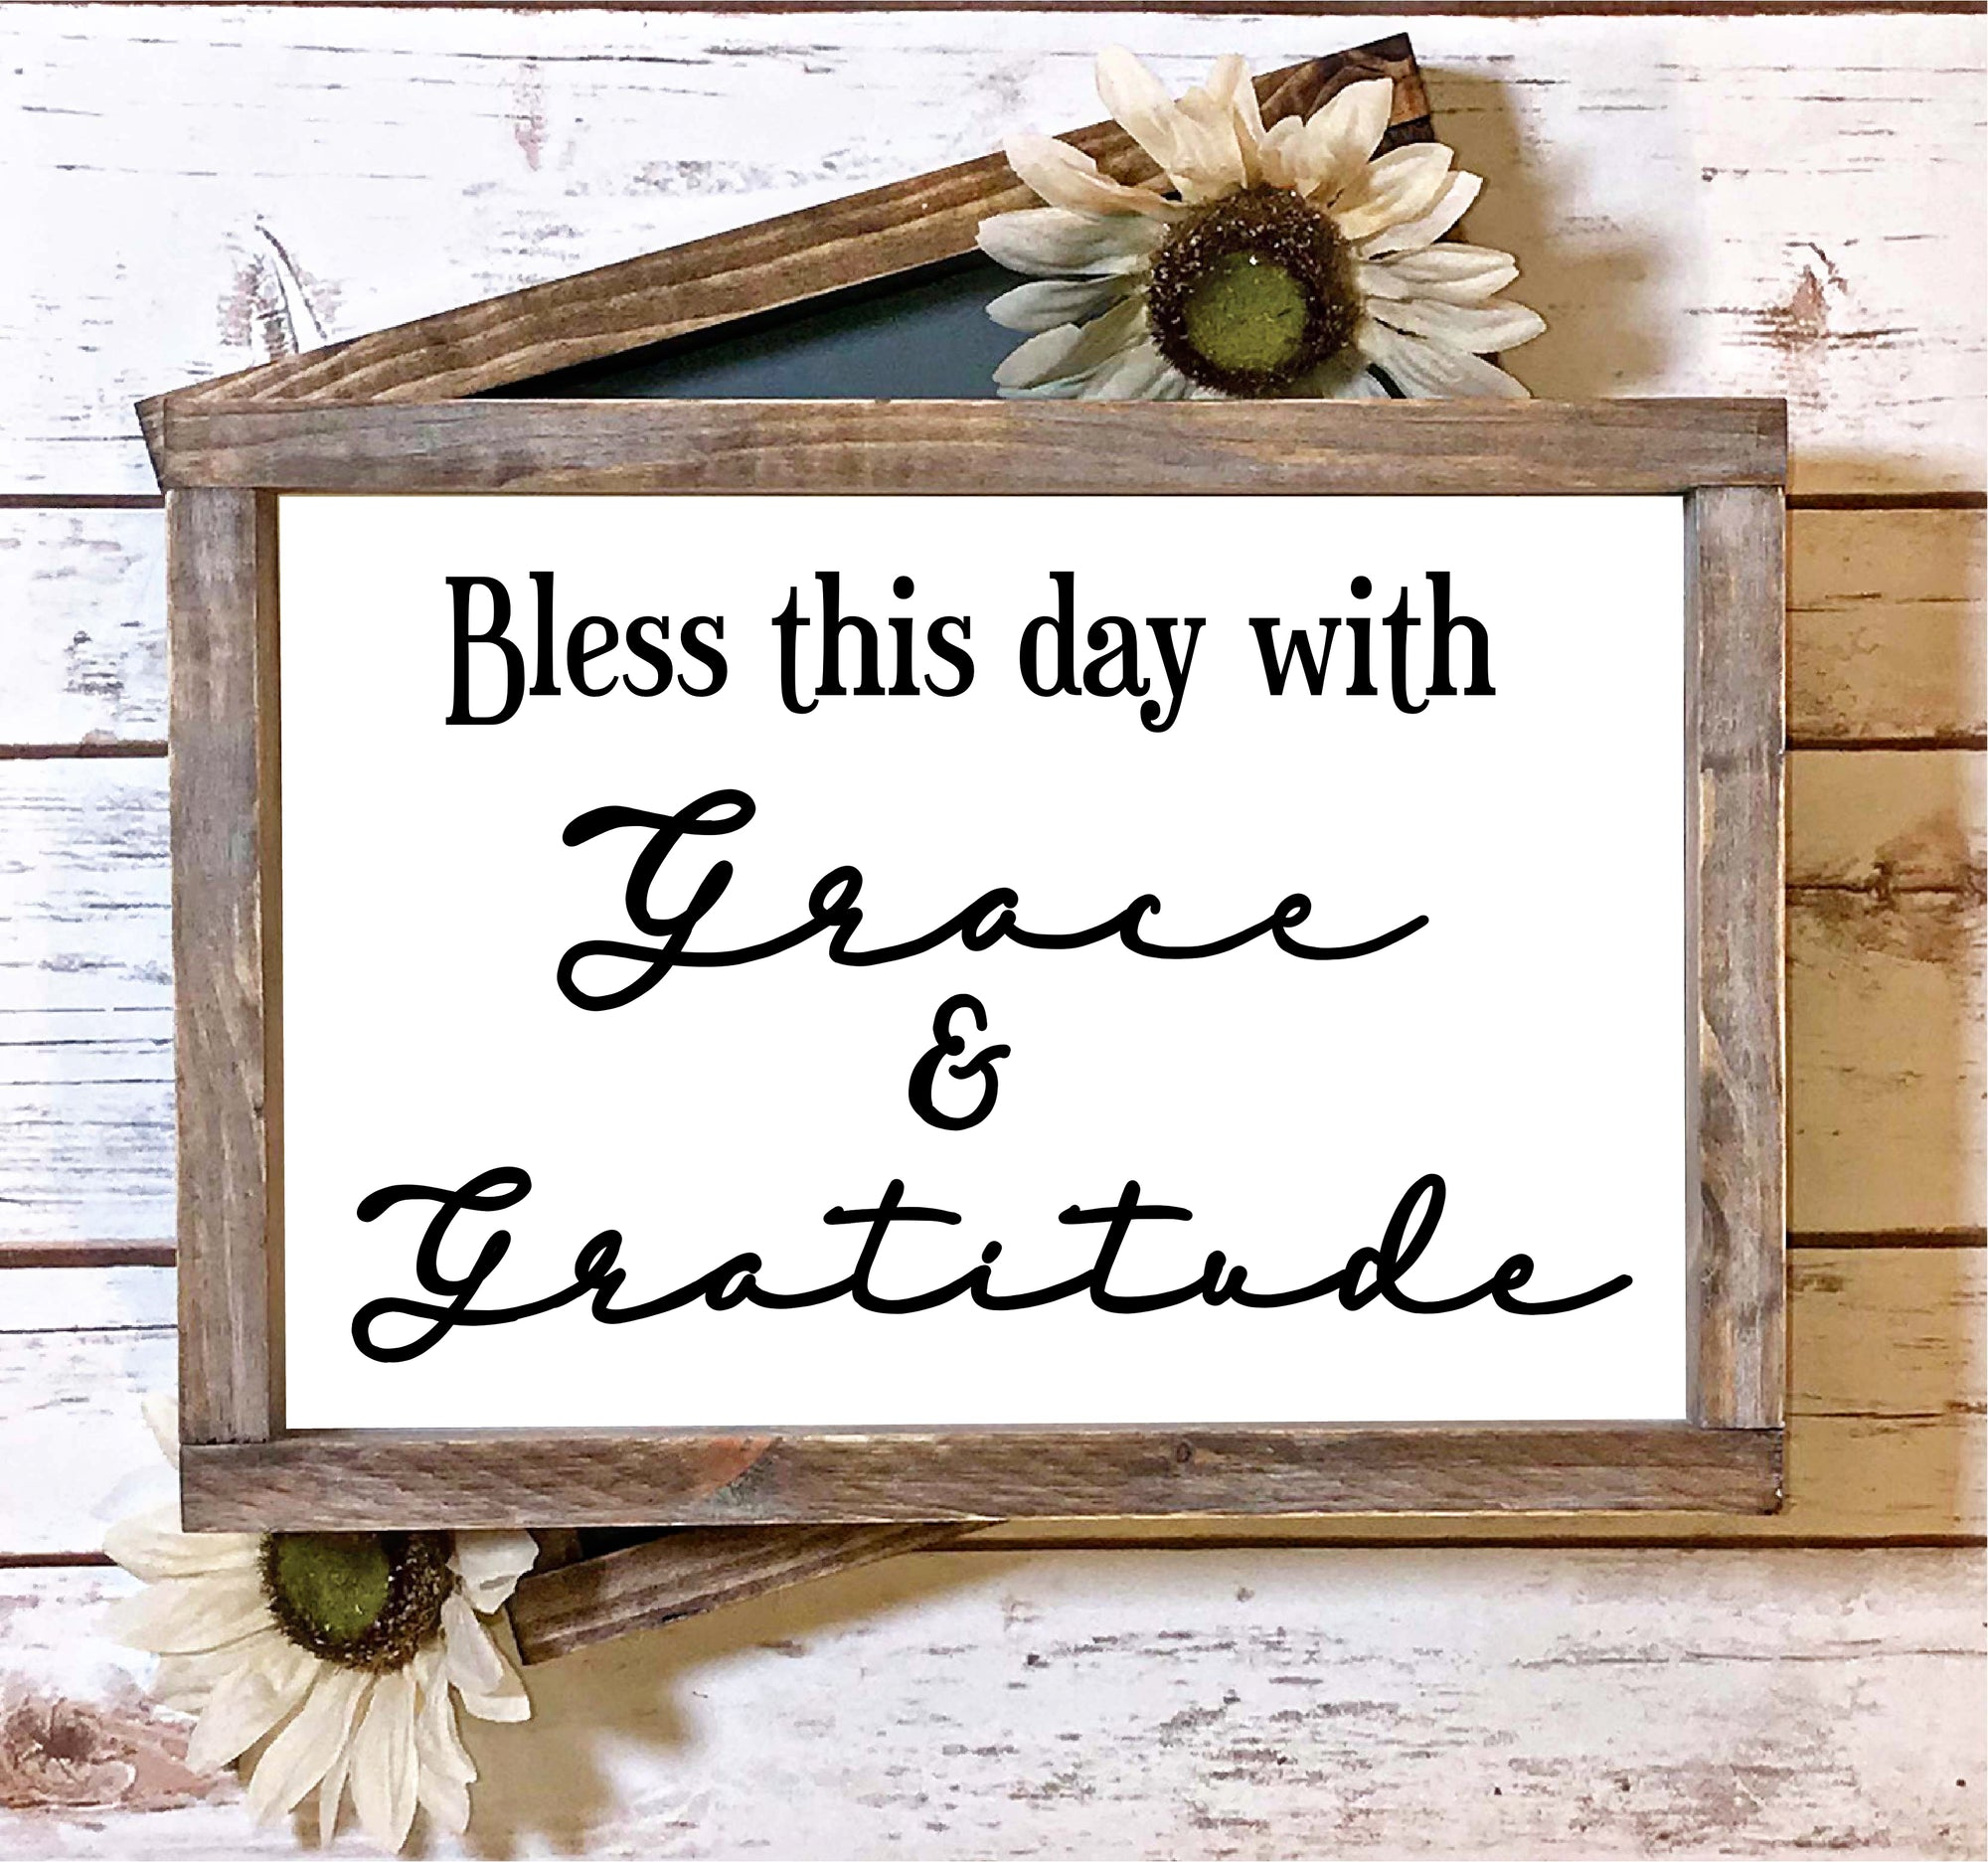 Bless this Day with Grace and Gratitude SVG File, Blessing SVG, Grateful SVG File, Wood Sign Saying Svg, Dining Room Svg, Wall Decor Svg